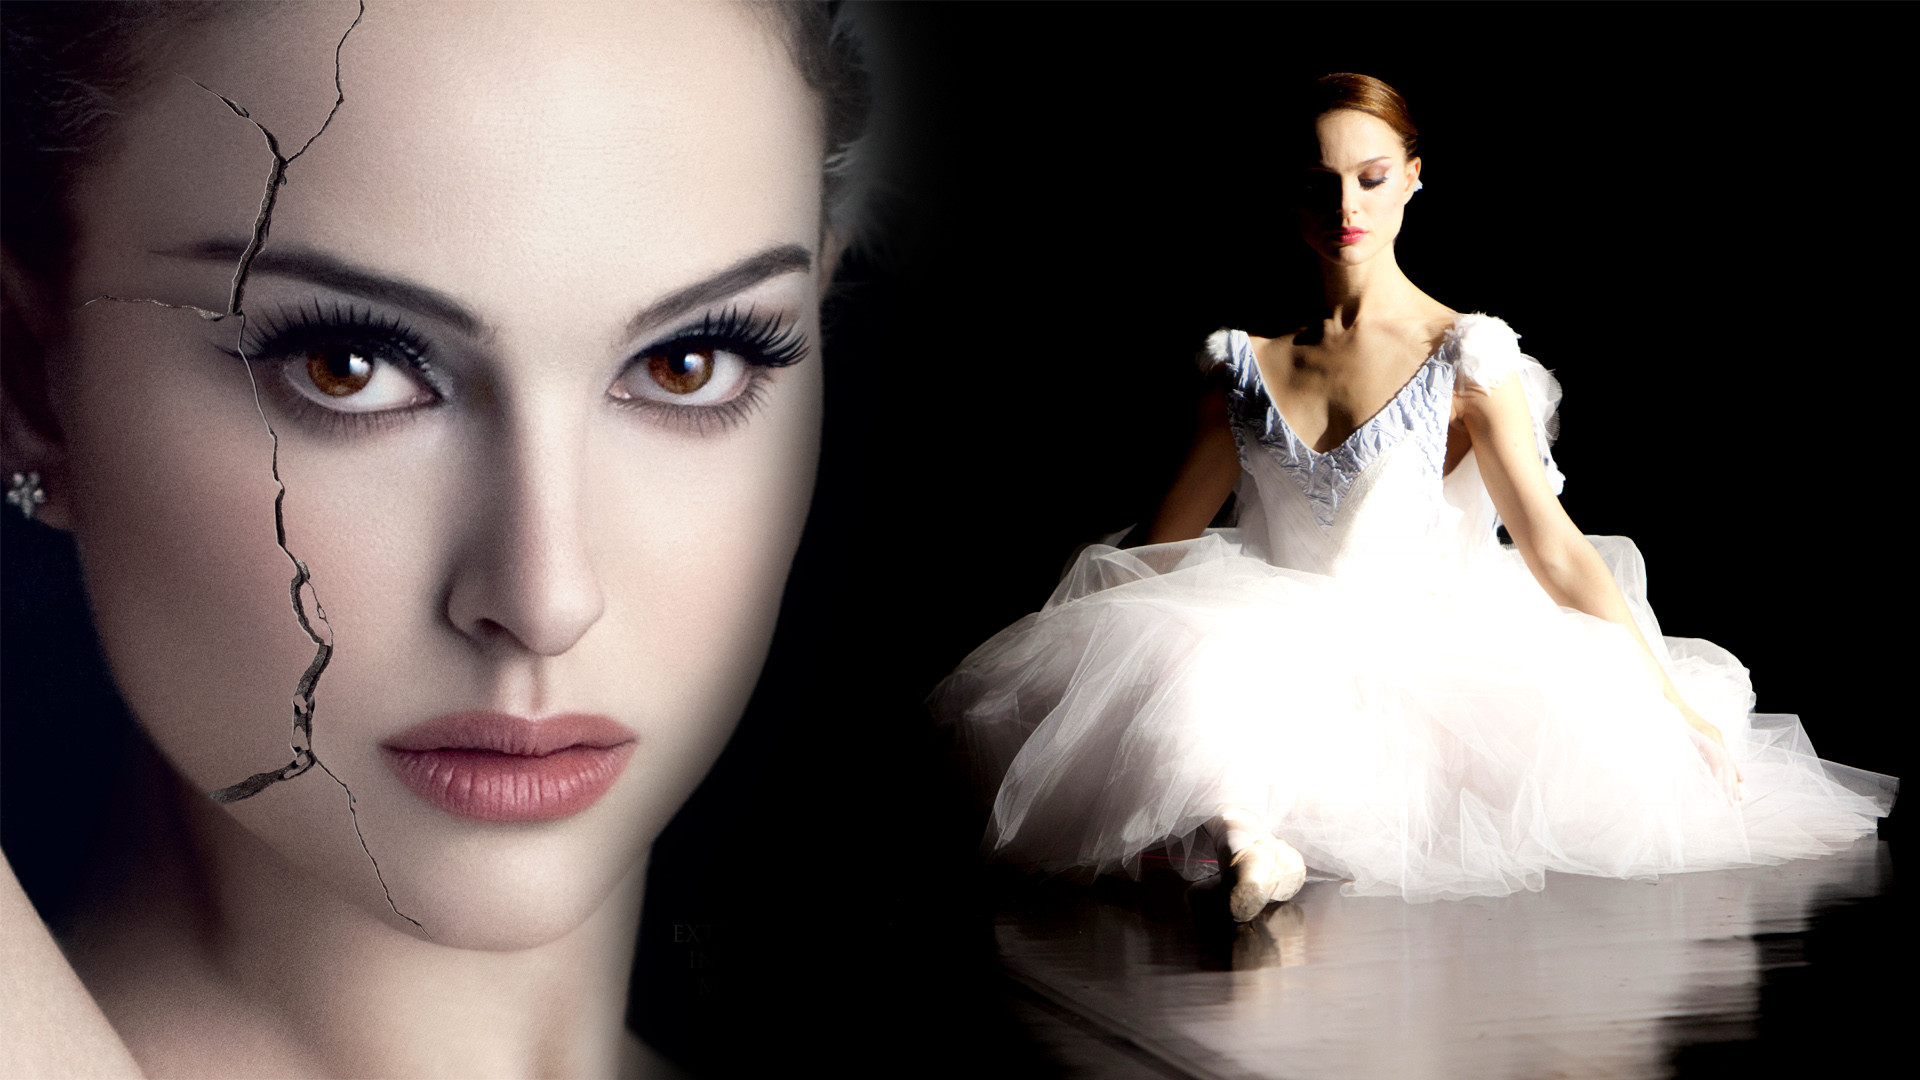 Black-Swan-Lily-Wait-did-you-have-some-sort-of-lezzy-wet-dream-about-me-Nina-Stop-it-Lil-wallpaper-wp3603441